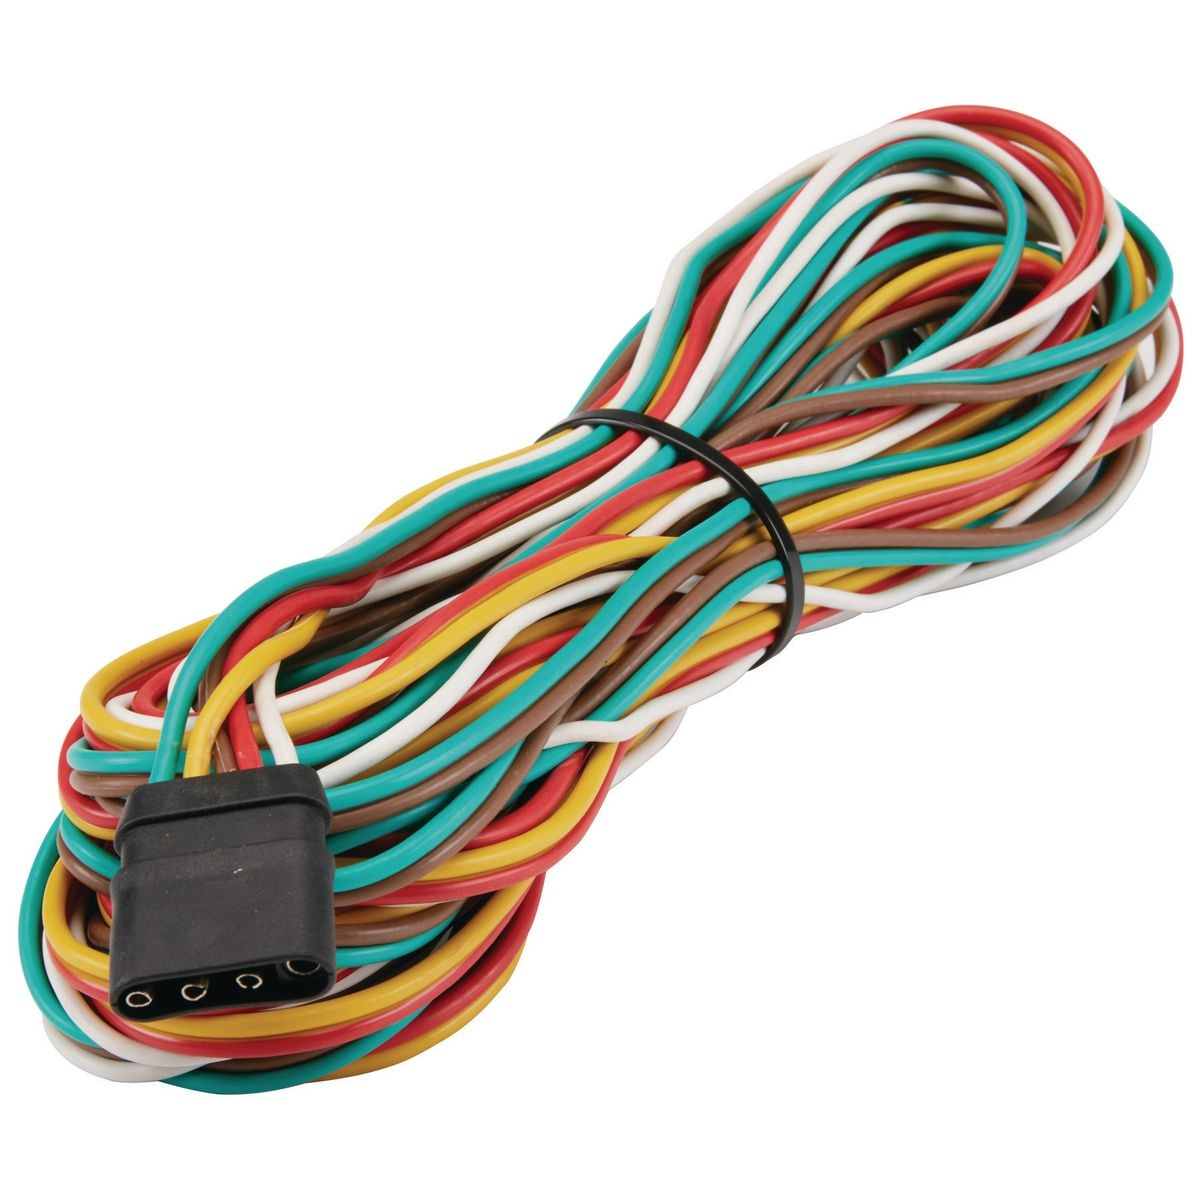 Heavy Duty Trailer Wire Harness Kits Get Free Image About Wiring